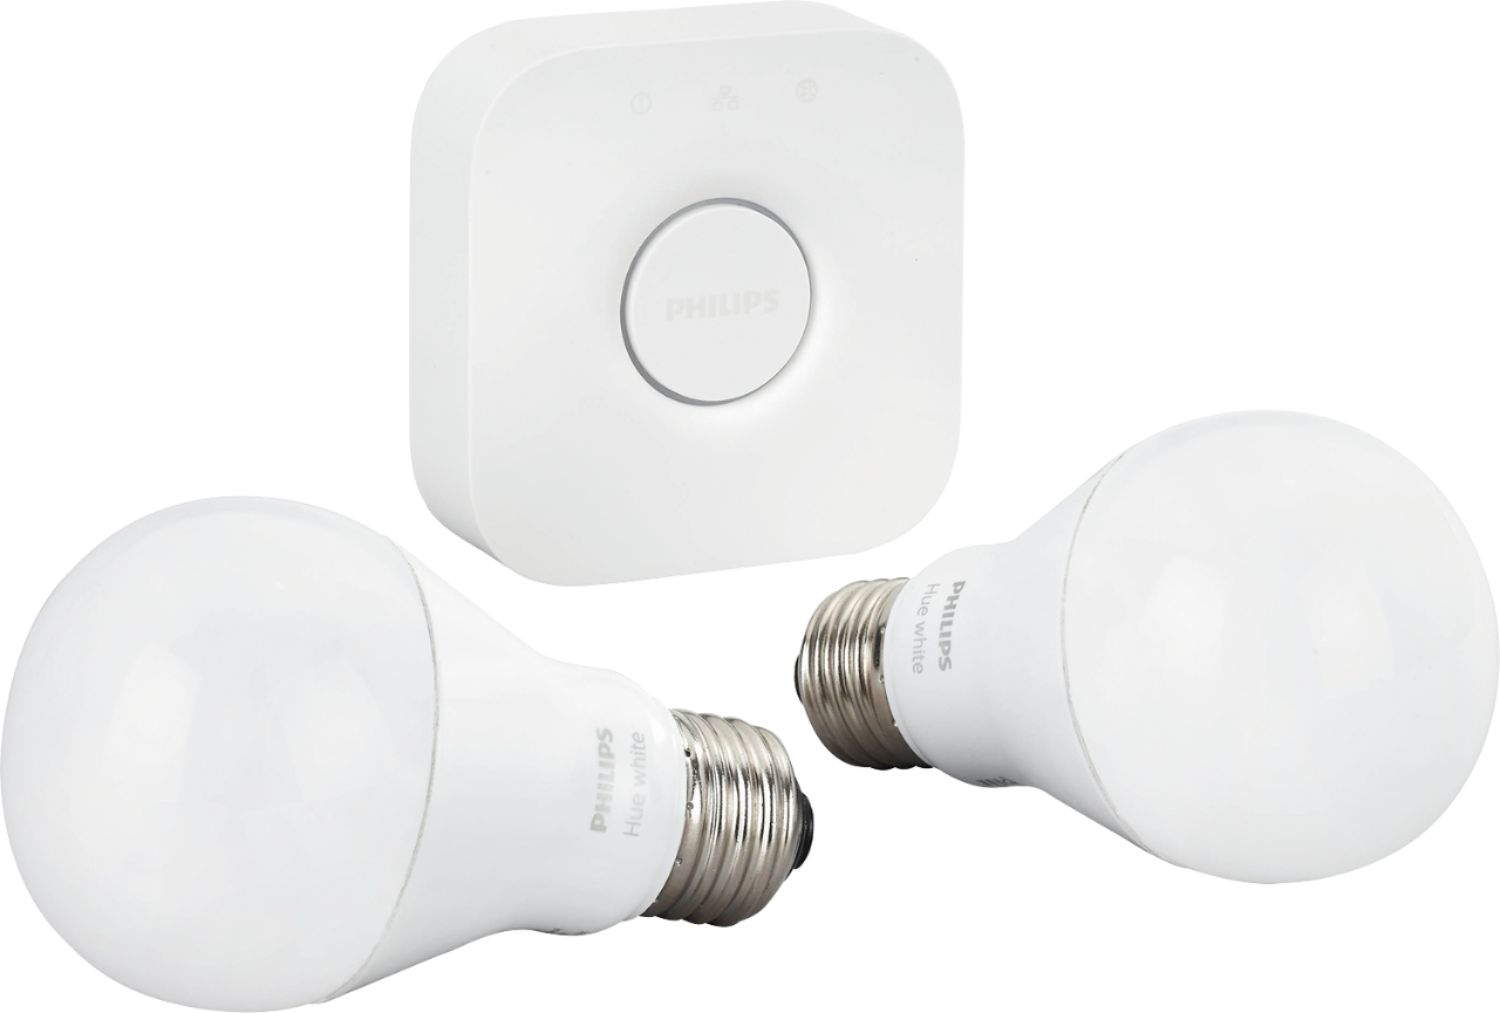 Philips Hub Philips Hue A19 60w Equivalent Wireless Starter Kit White